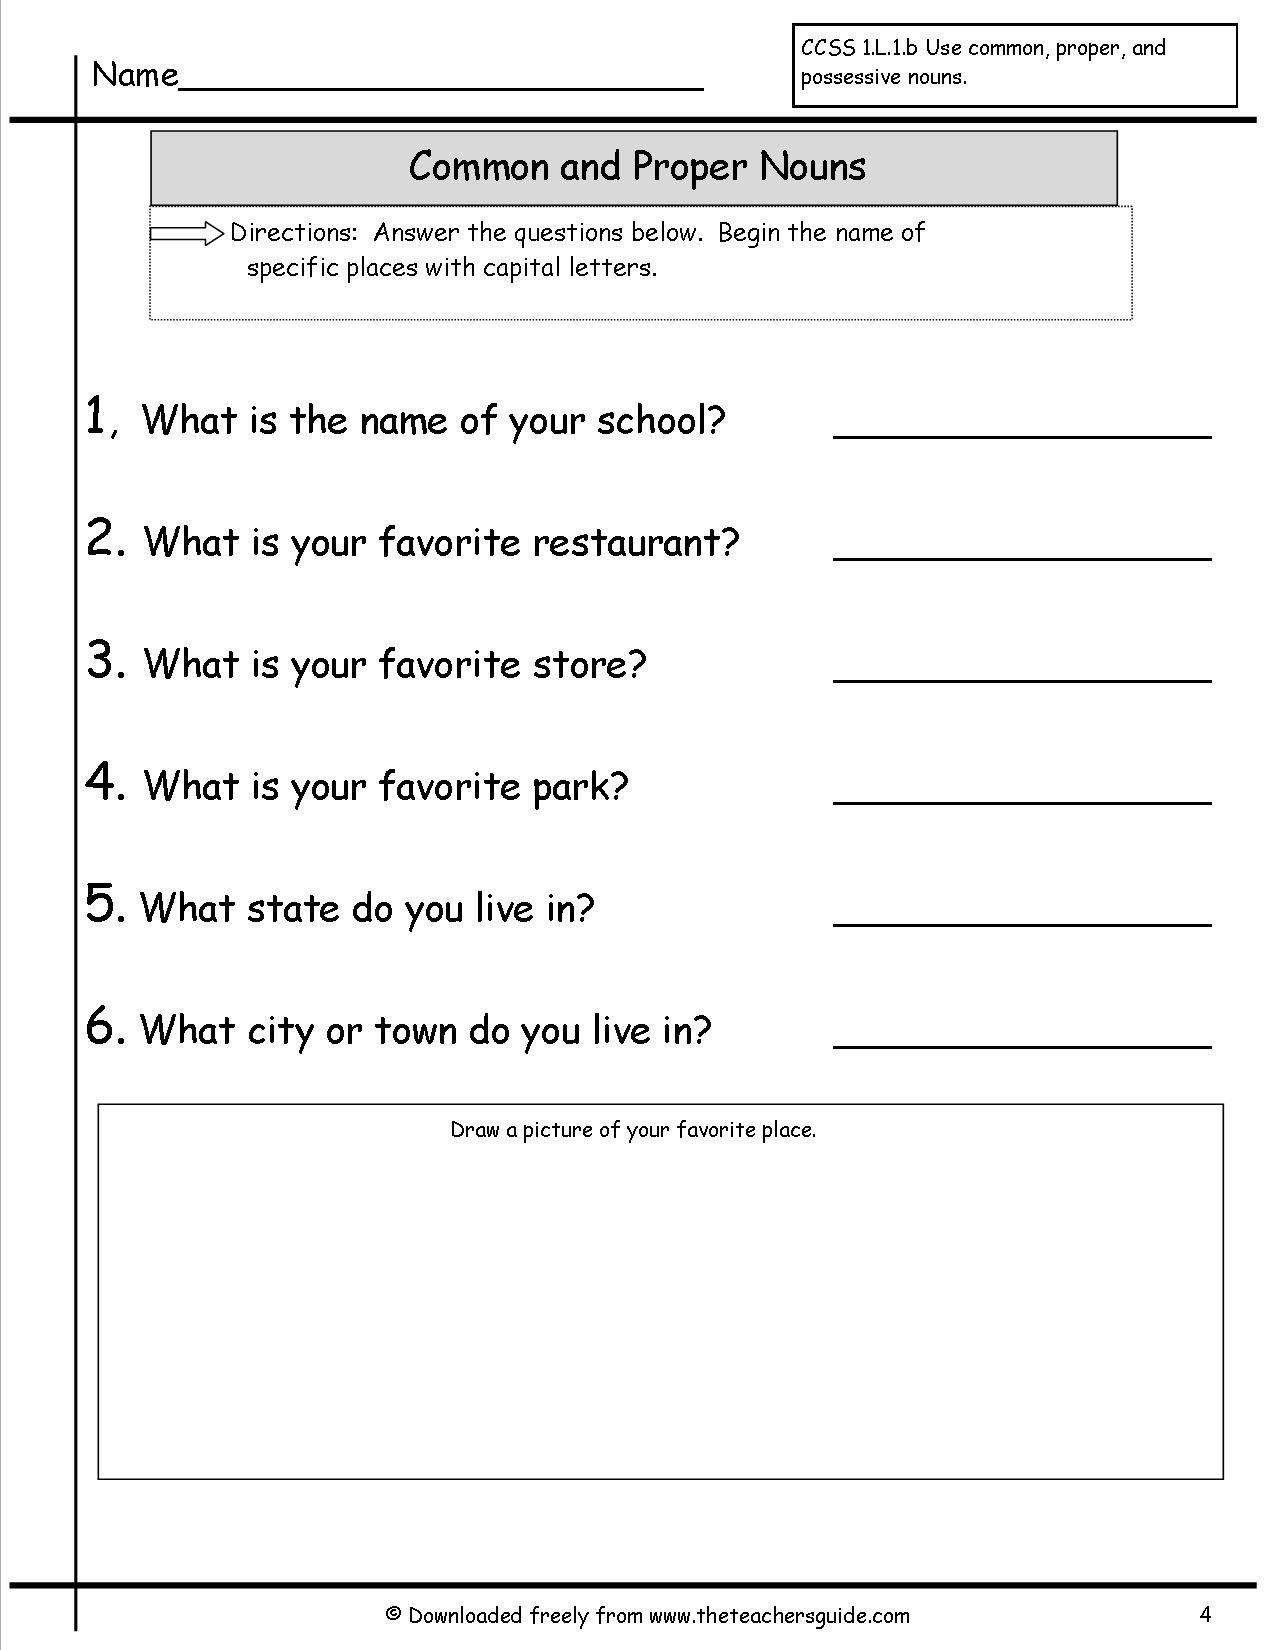 Second Grade Worksheet On Common And Proper Nouns